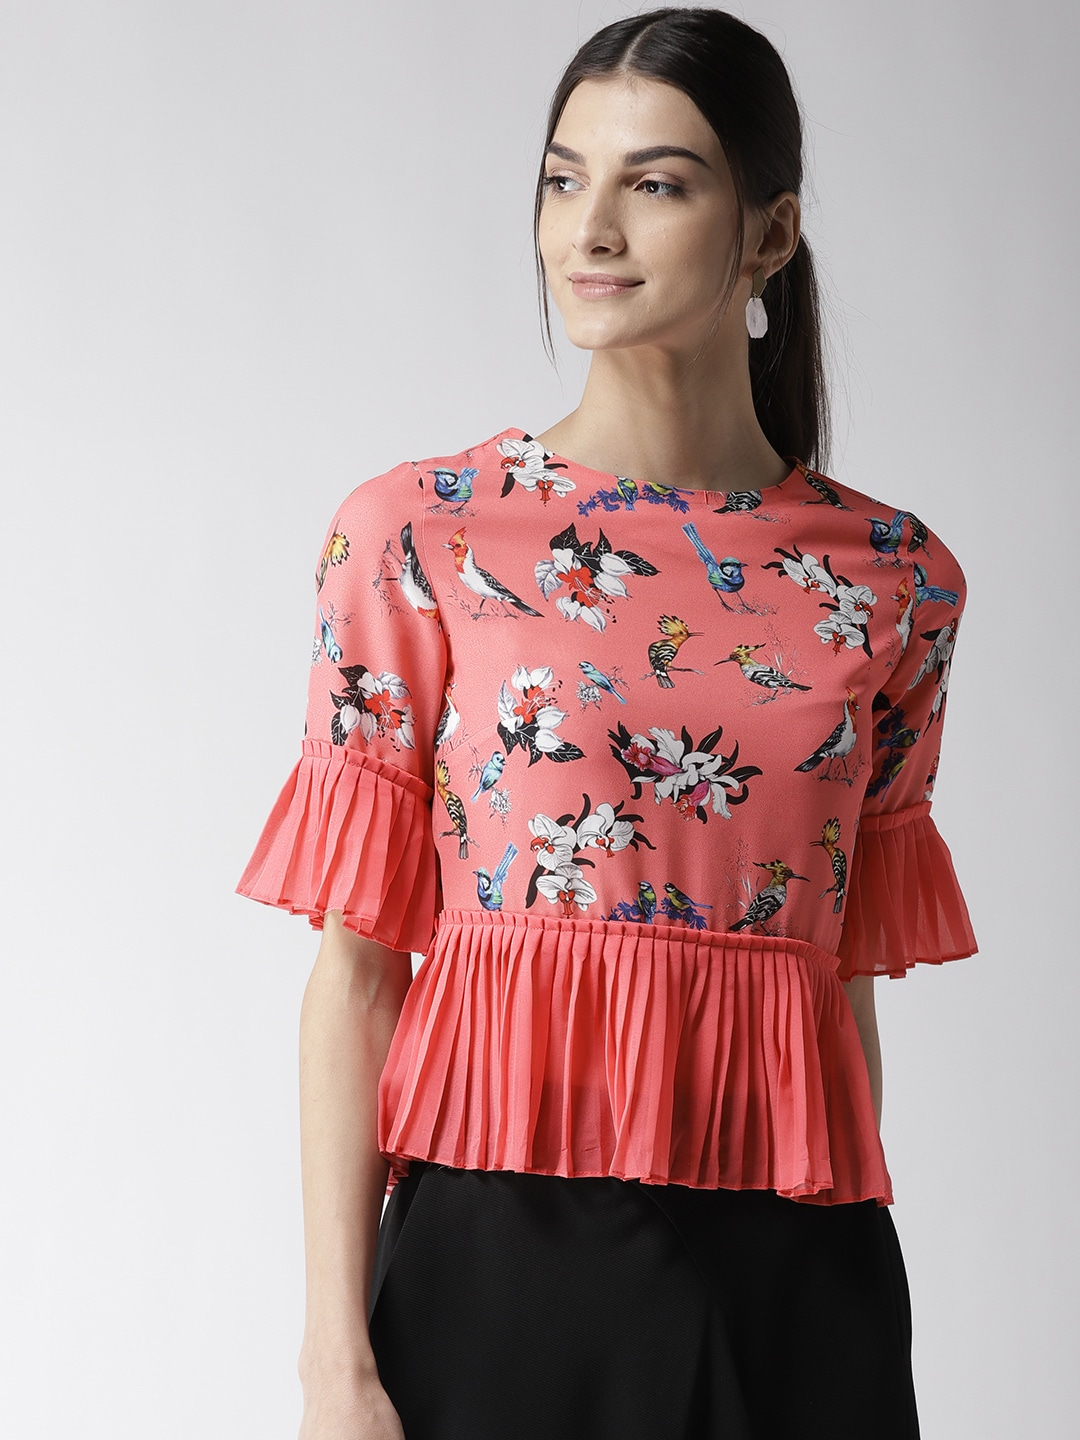 b3f7f6e1c5c Madame Store - Buy Women Clothing at Madame Online Store